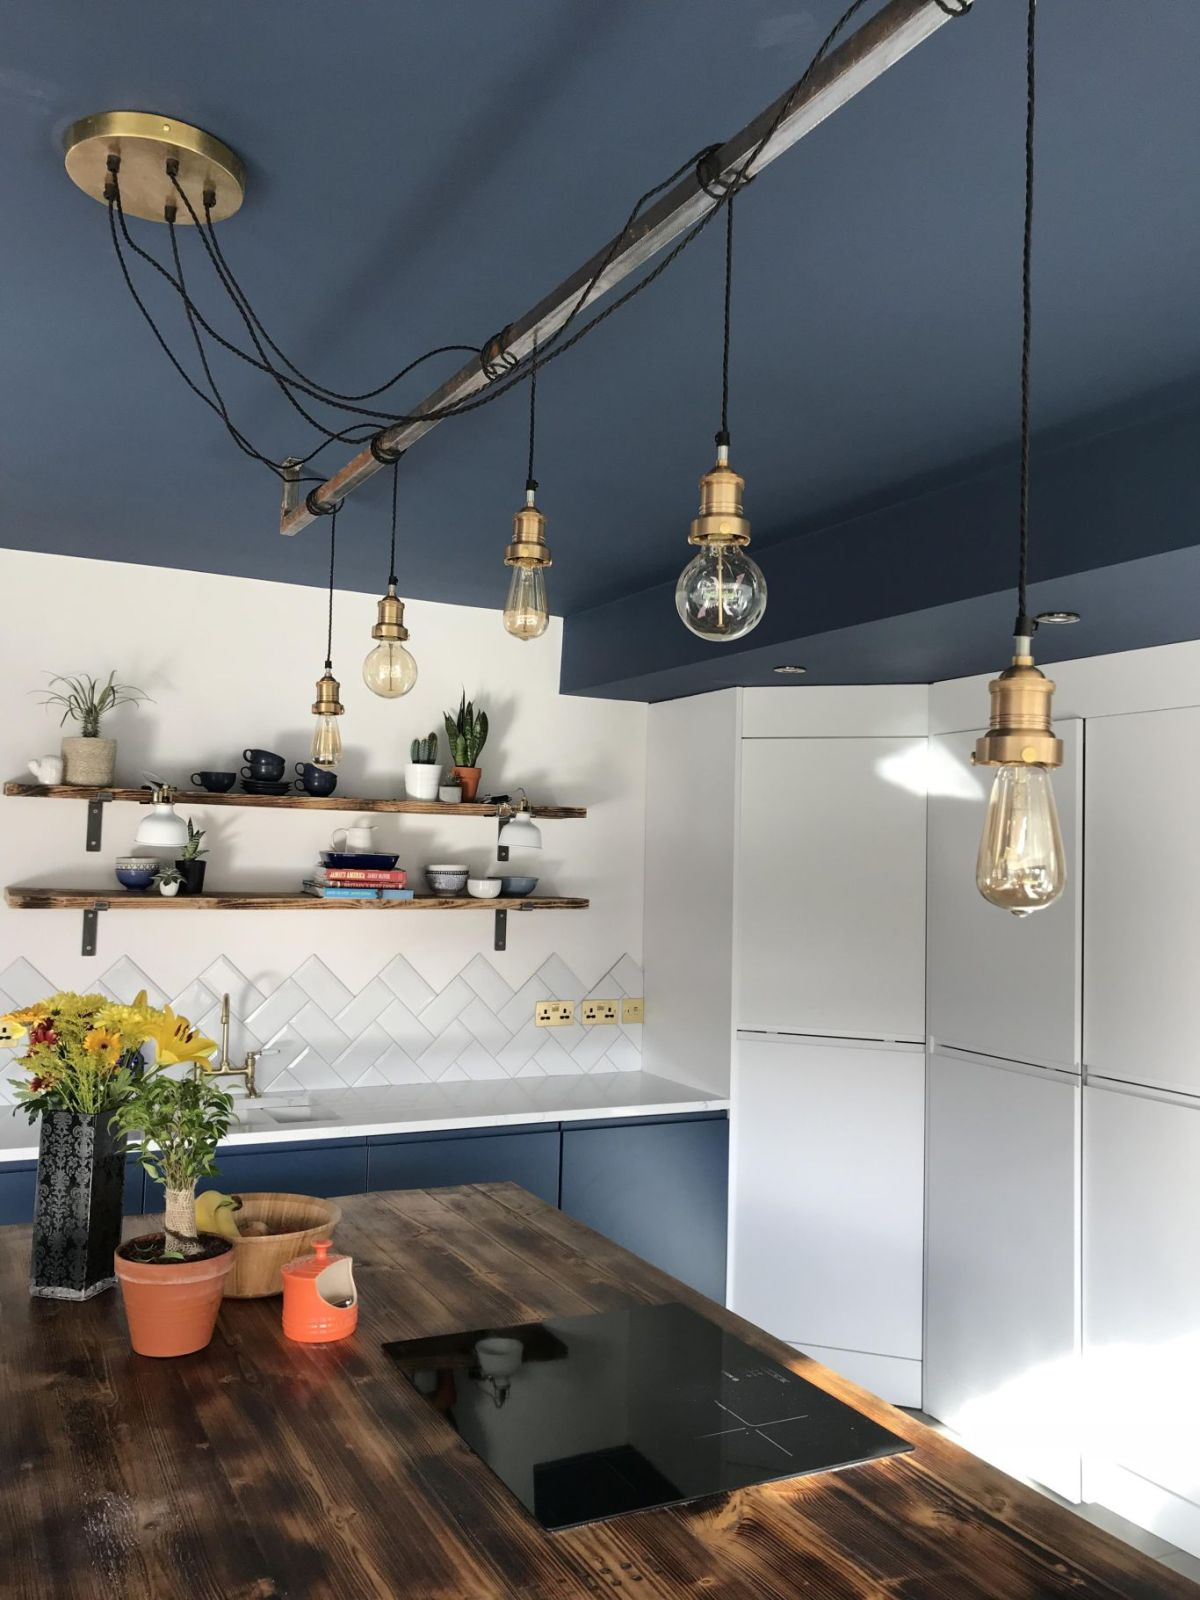 25 Kitchen Lighting Ideas How To Plan Your Kitchen Lighting Scheme Like A Pro Real Homes